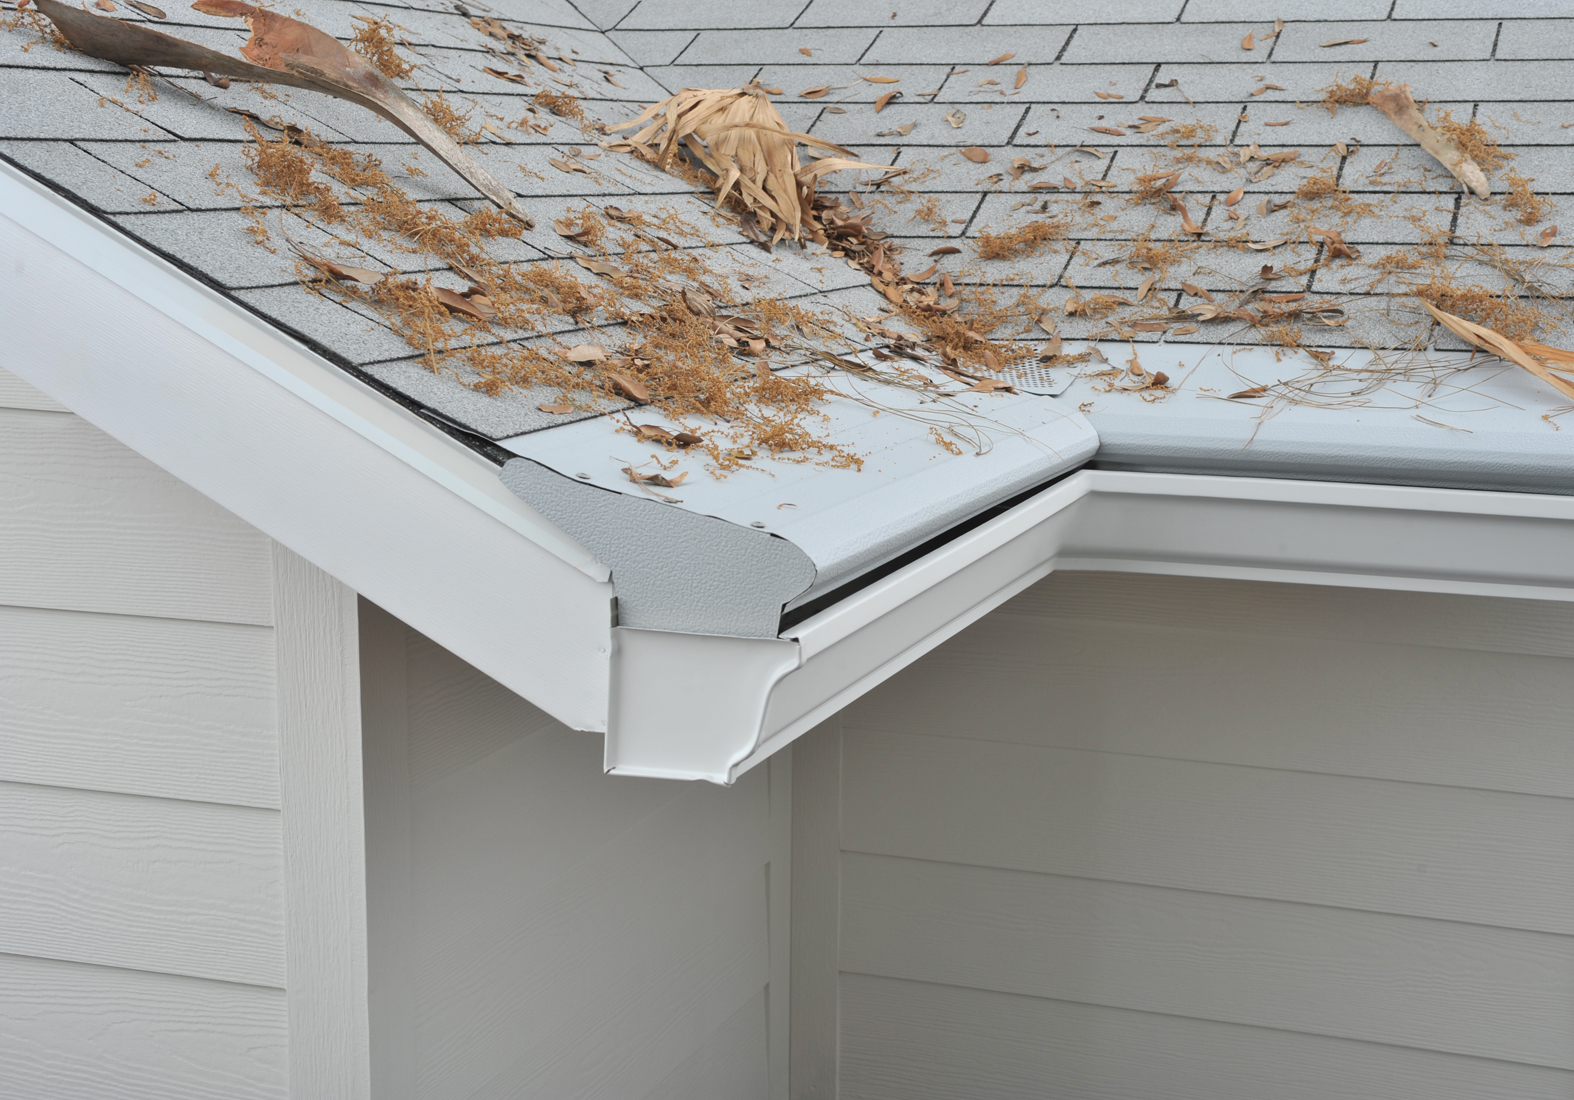 Spray It Or Vacuum It The Gutter Cleaner S Conundrum